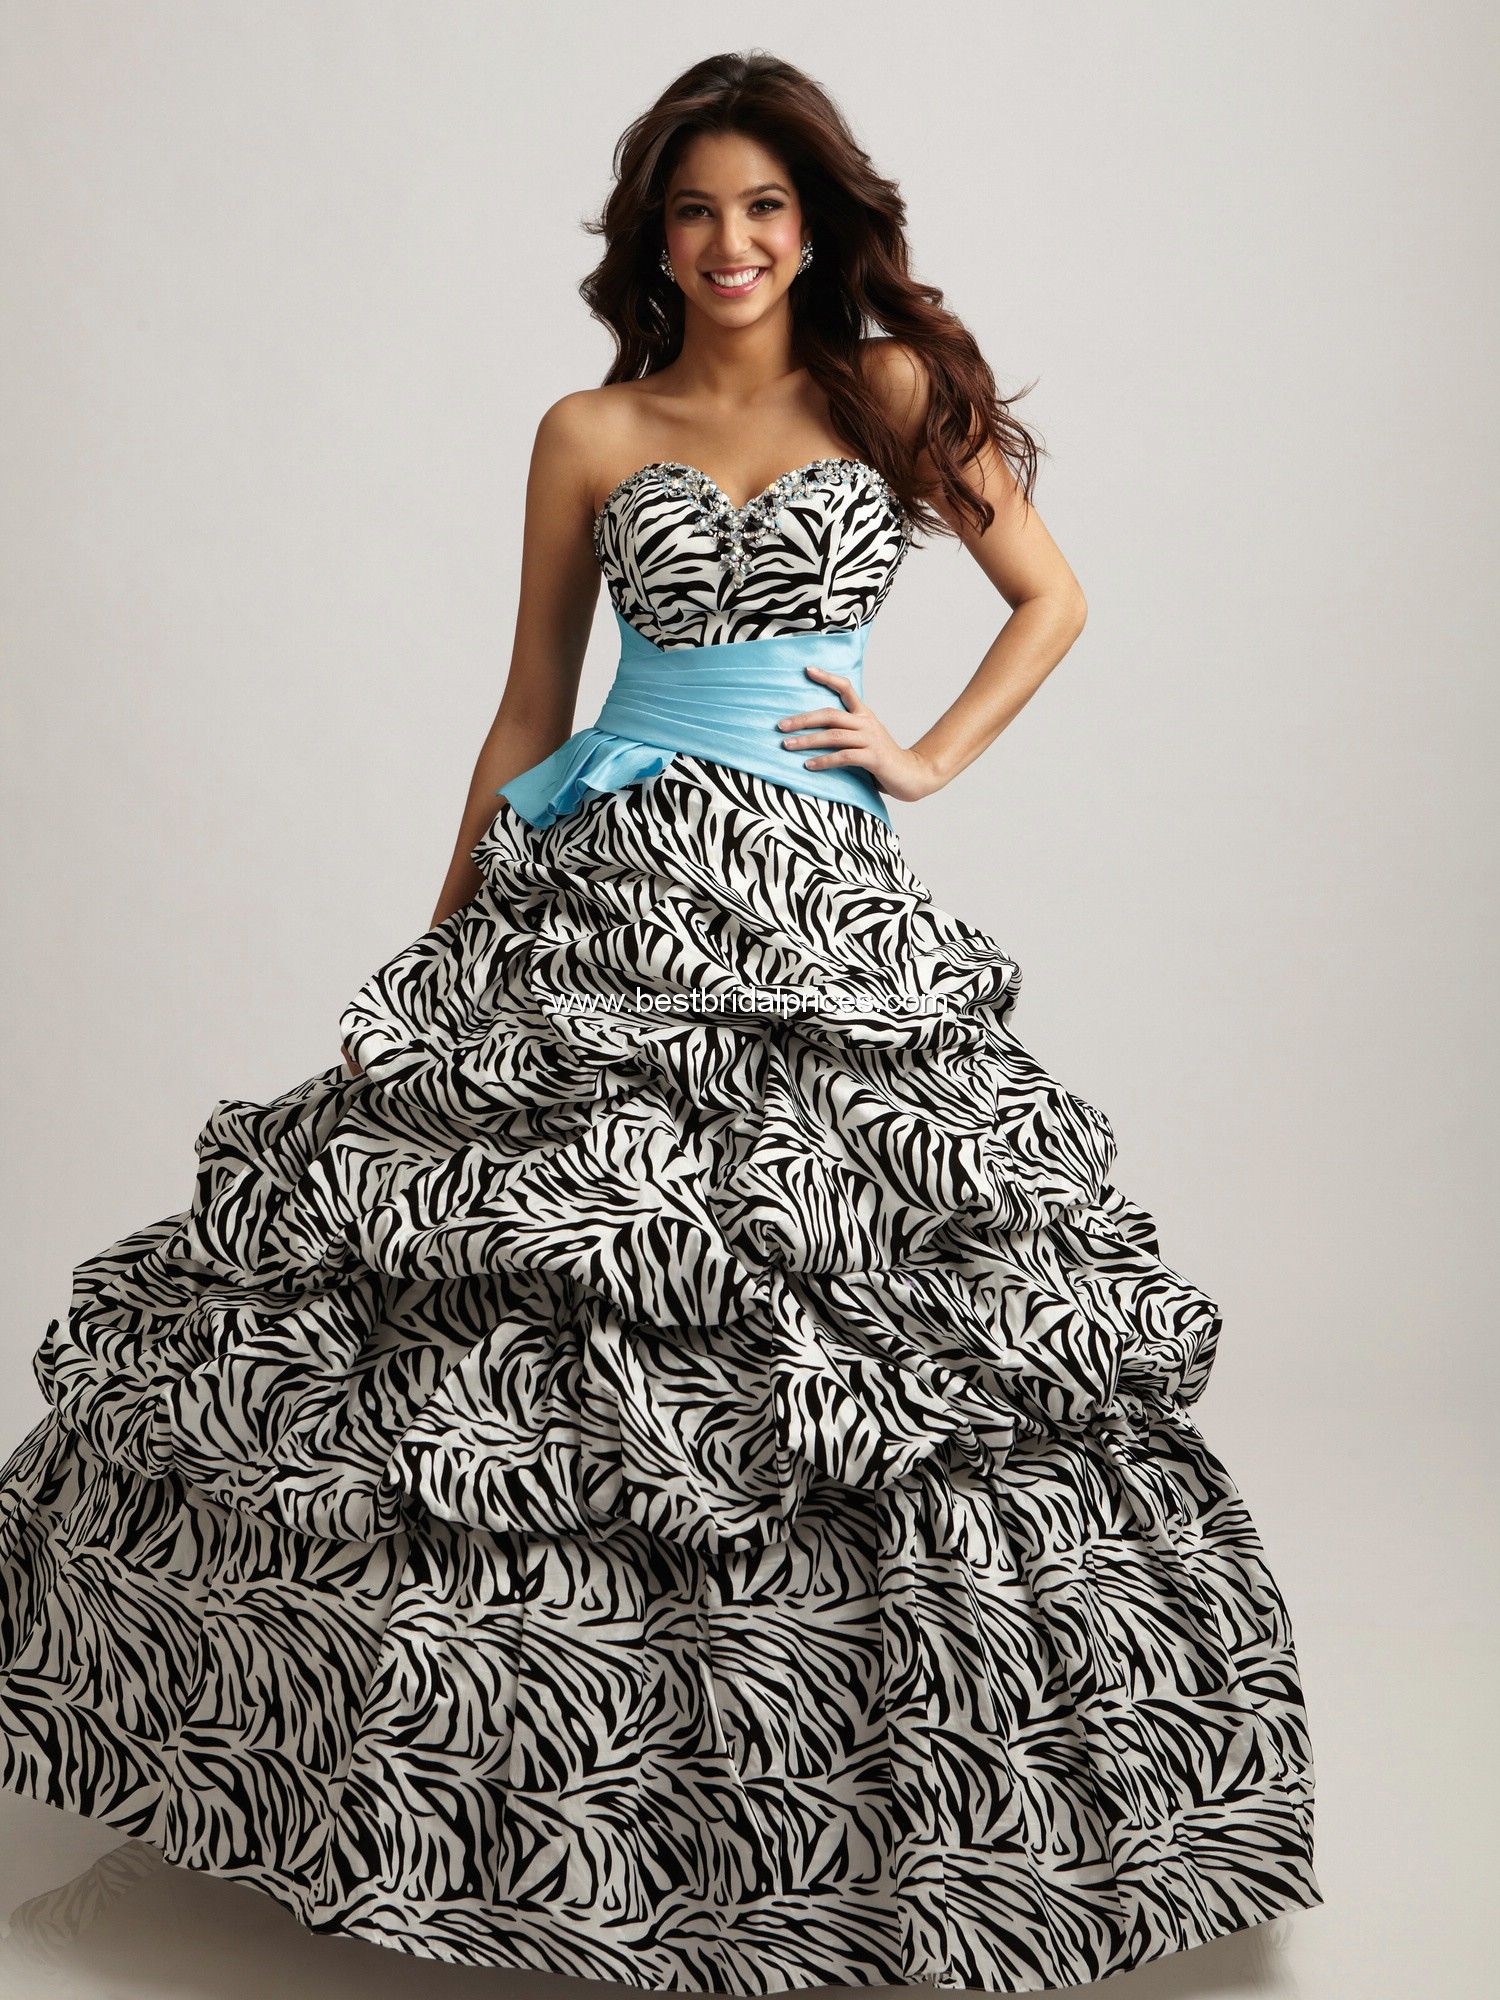 Allure quinceanera dresses style q291 q291 43800 wedding allure quinceanera dresses style q291 q291 43800 wedding dresses ombrellifo Image collections